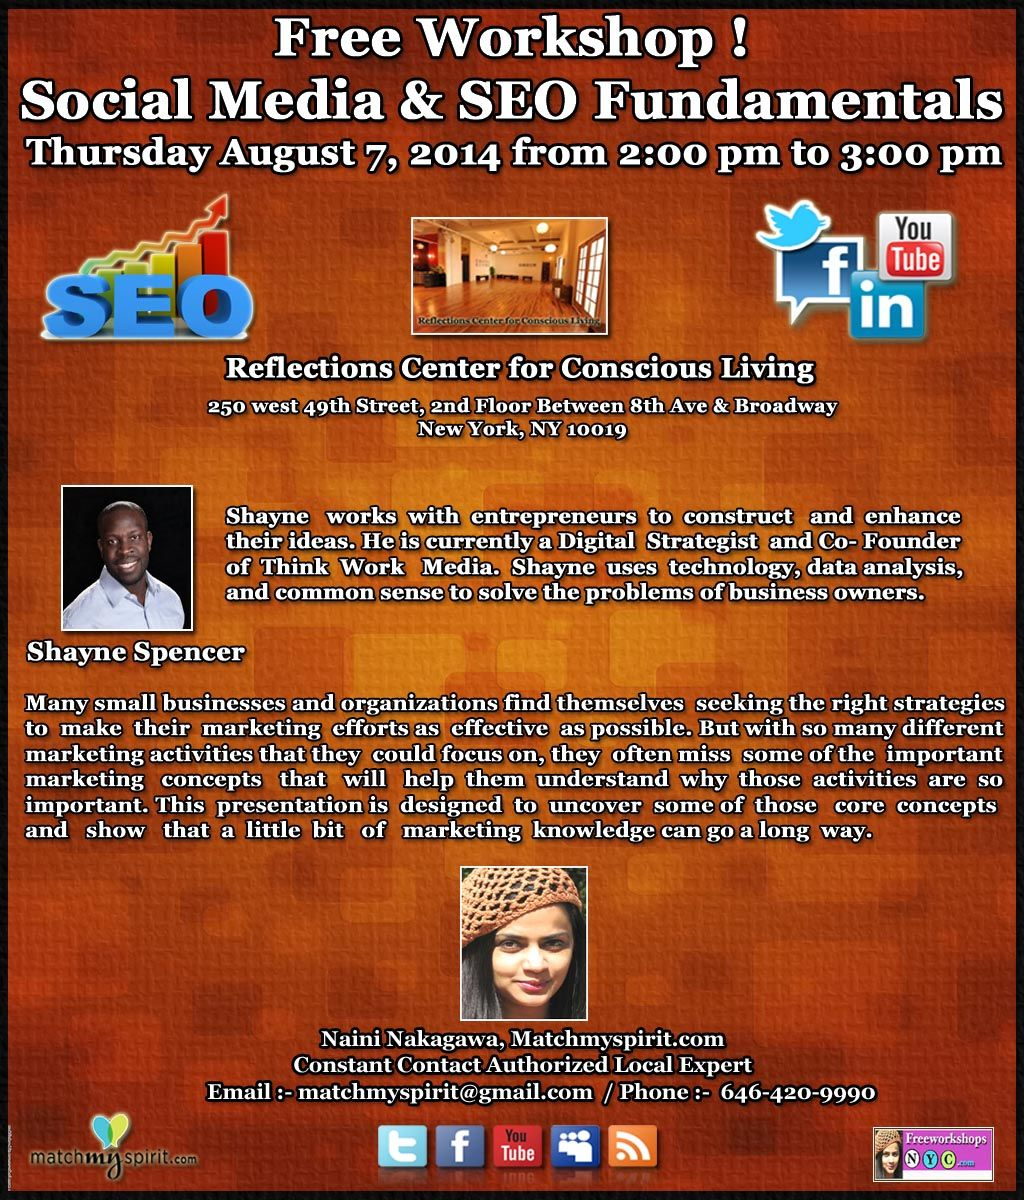 Free Workshop! Social Media & SEO Fundamentals Thursday, August 7, 2014   from 2:00 pm to 3:00 pm Reflections Studio for Conscious Living, 250 west 49th Street, 2nd Floor Between 8th Ave & Broadway New York, NY 10019  For Registration Click Below Link  https://events.r20.constantcontact.com/register/eventReg?oeidk=a07e9gepauj57226b98&oseq=&c=&ch=